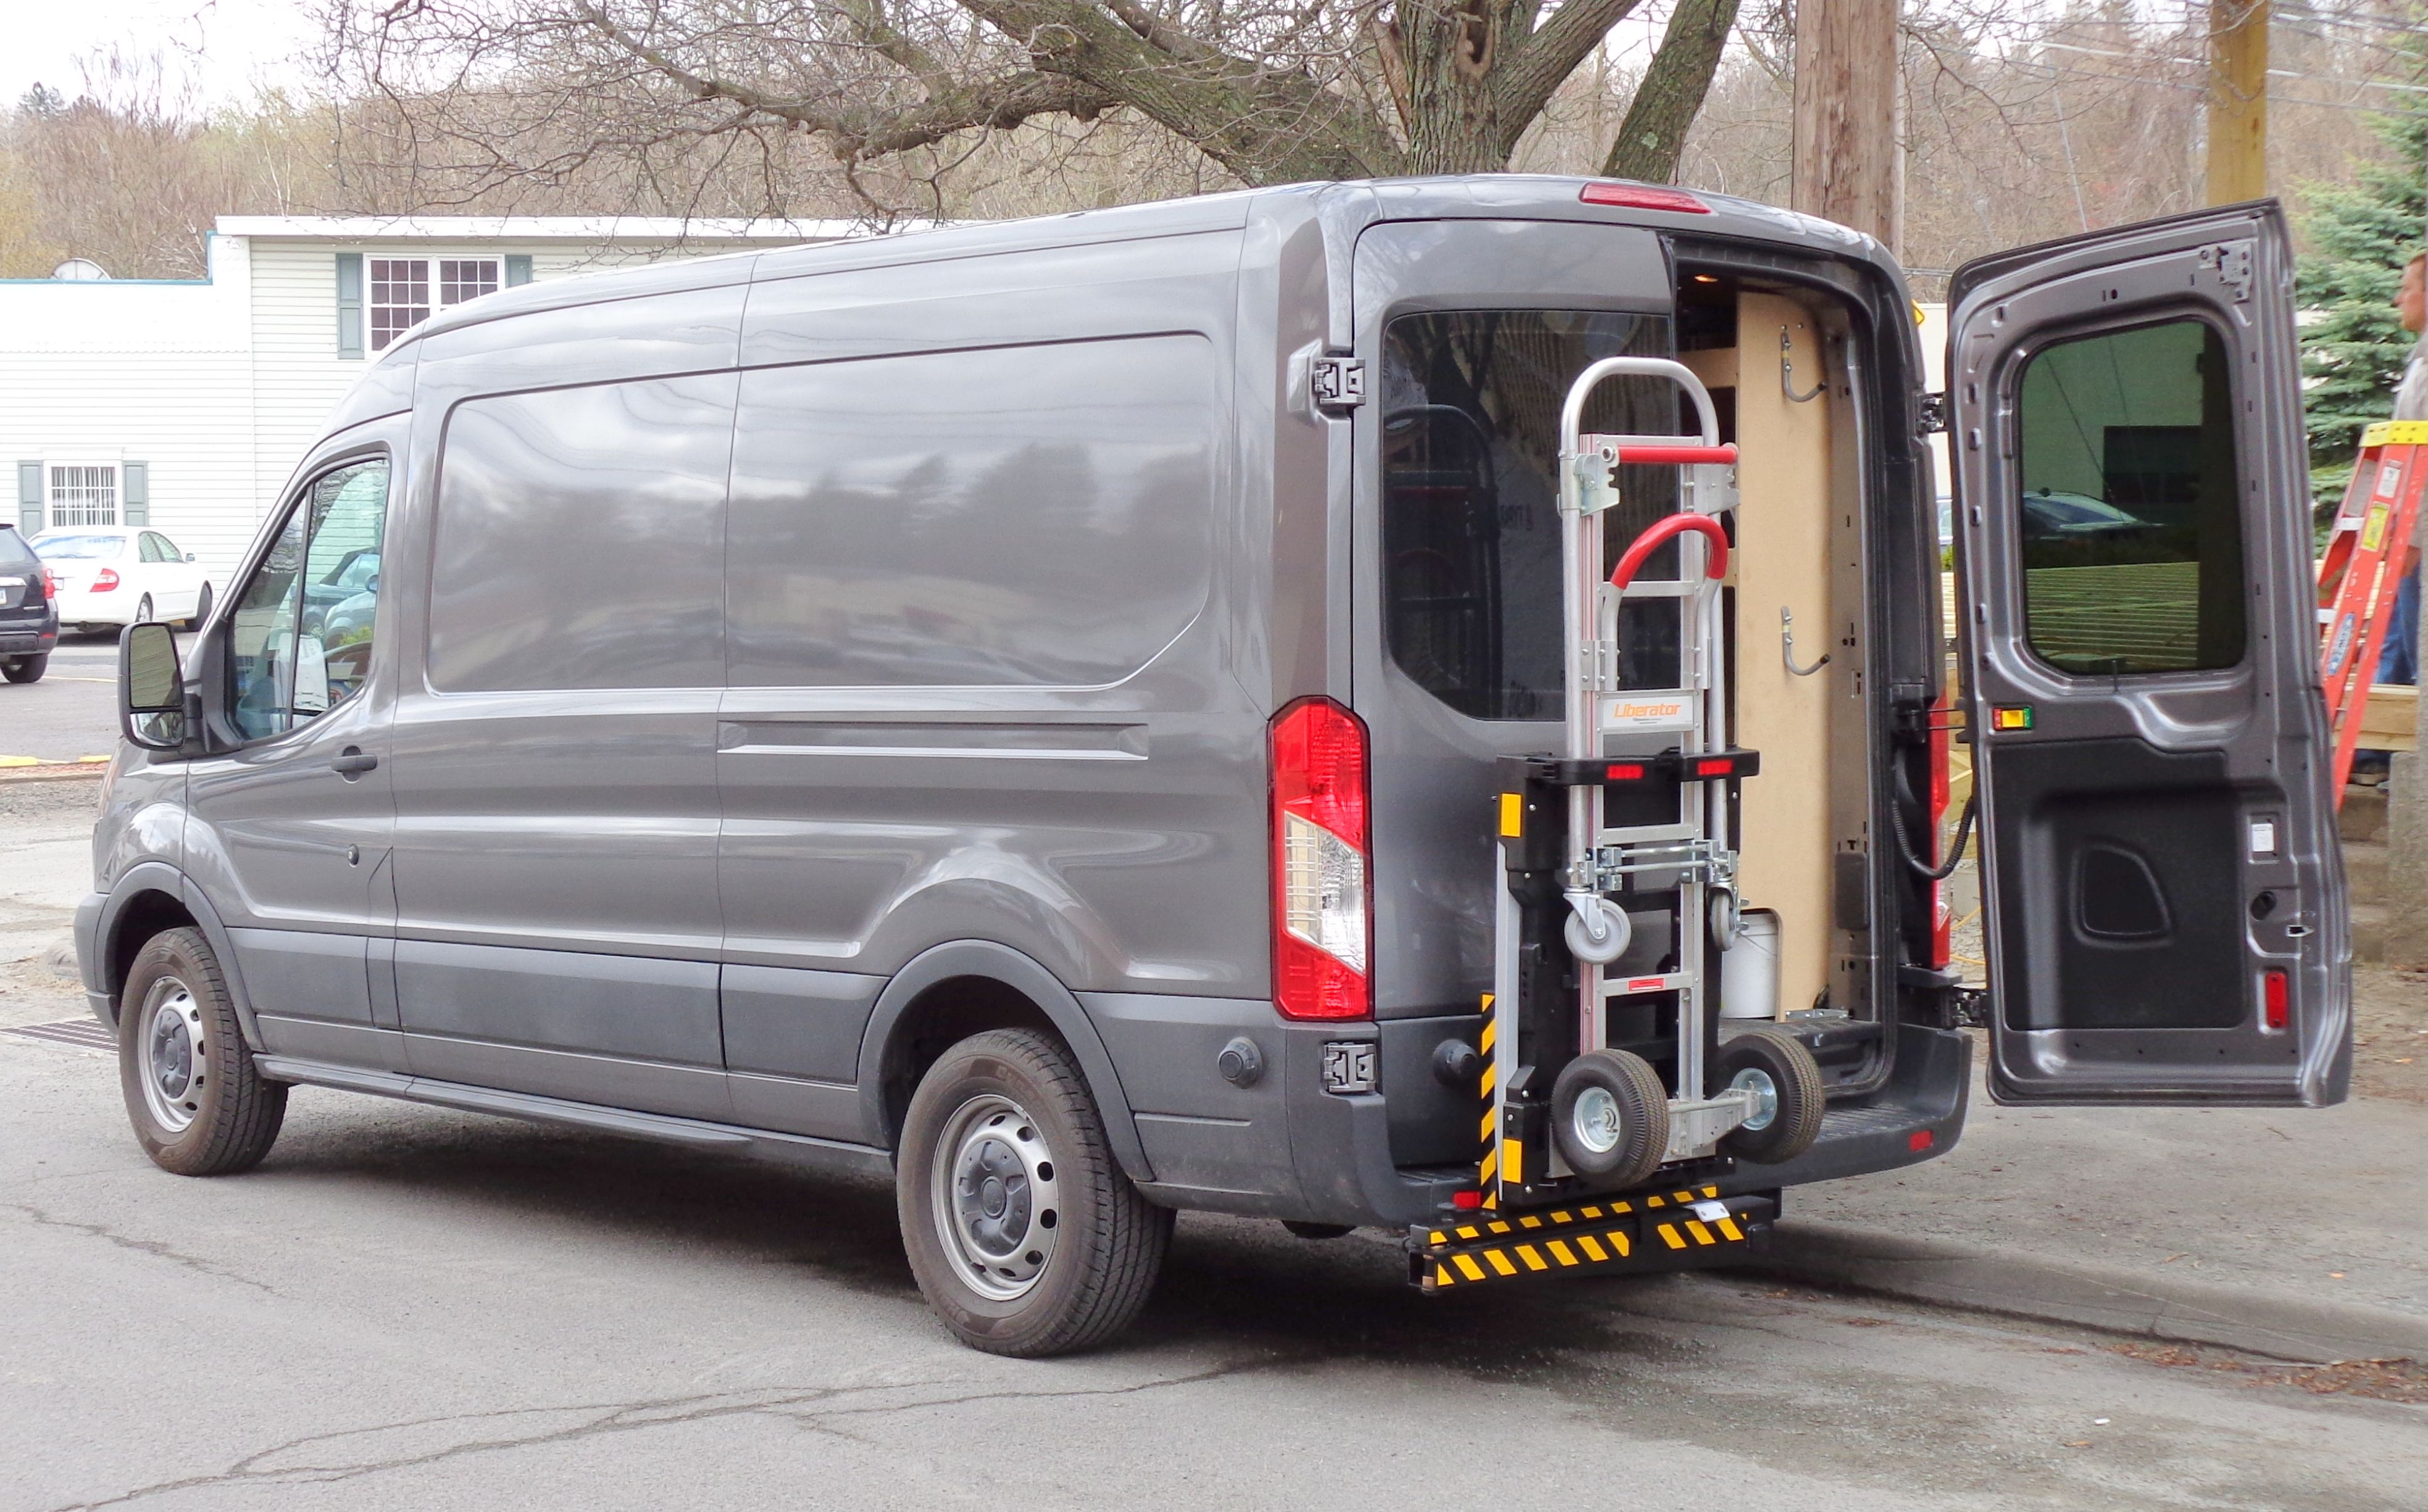 Hts Systems Hts 20sfth Hand Truck Sentry System Reduces Physical Effort Route Delivery Time Labor Costs Fuel Expenses Ford Transit Van Delivery Driver Jobs